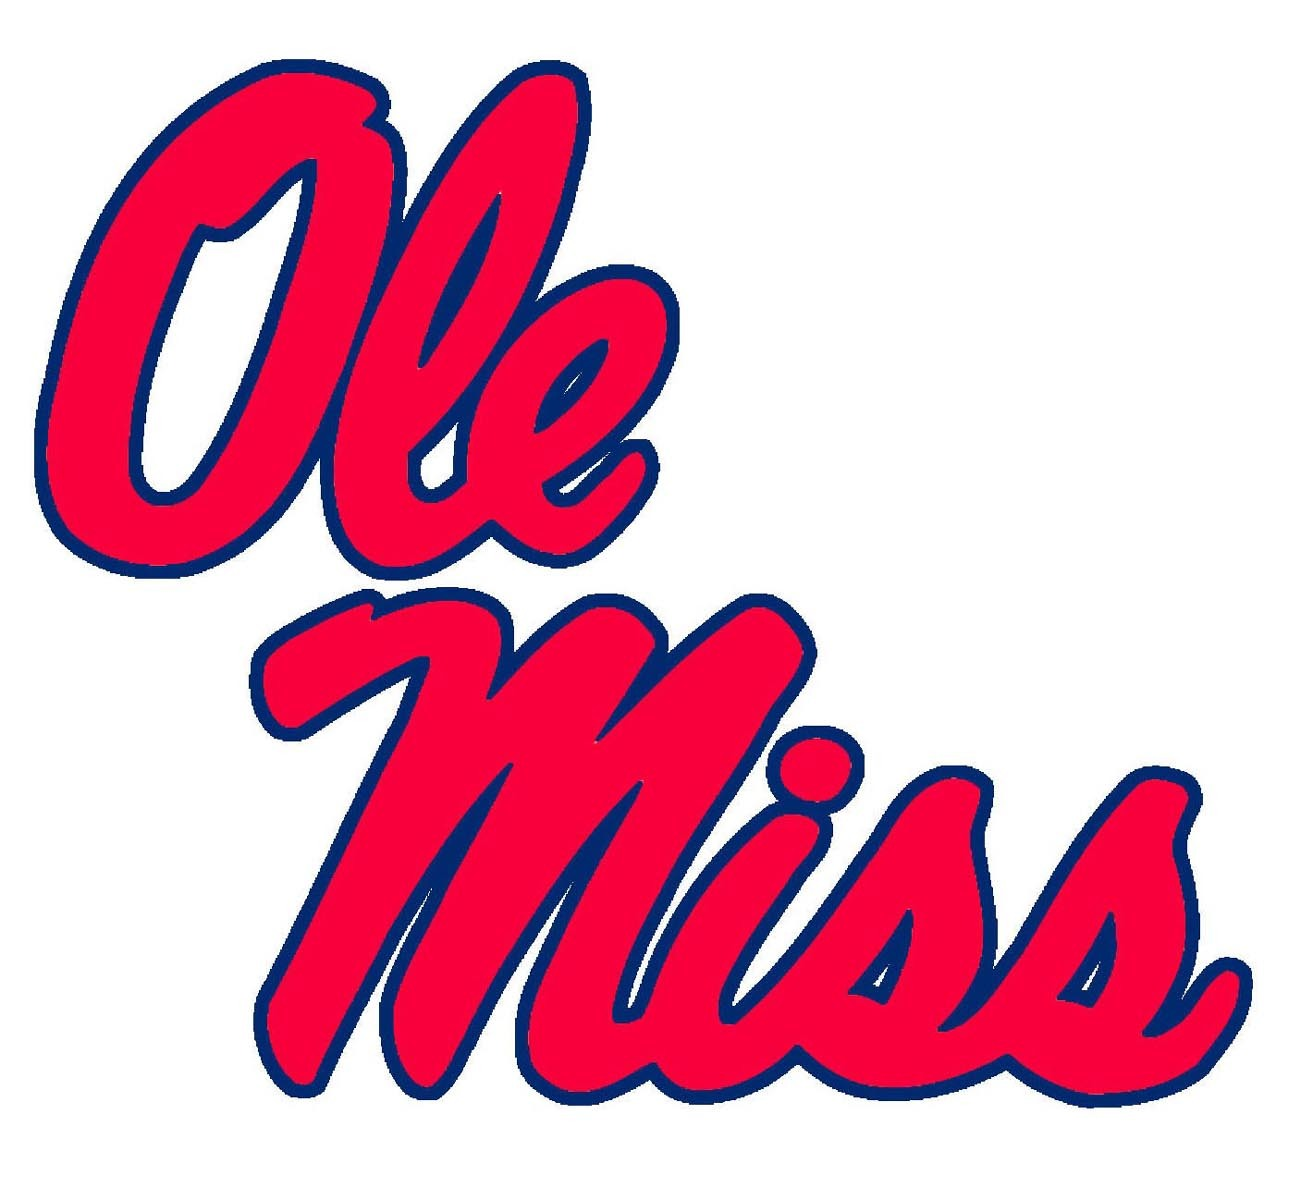 Ole miss rebel clipart.